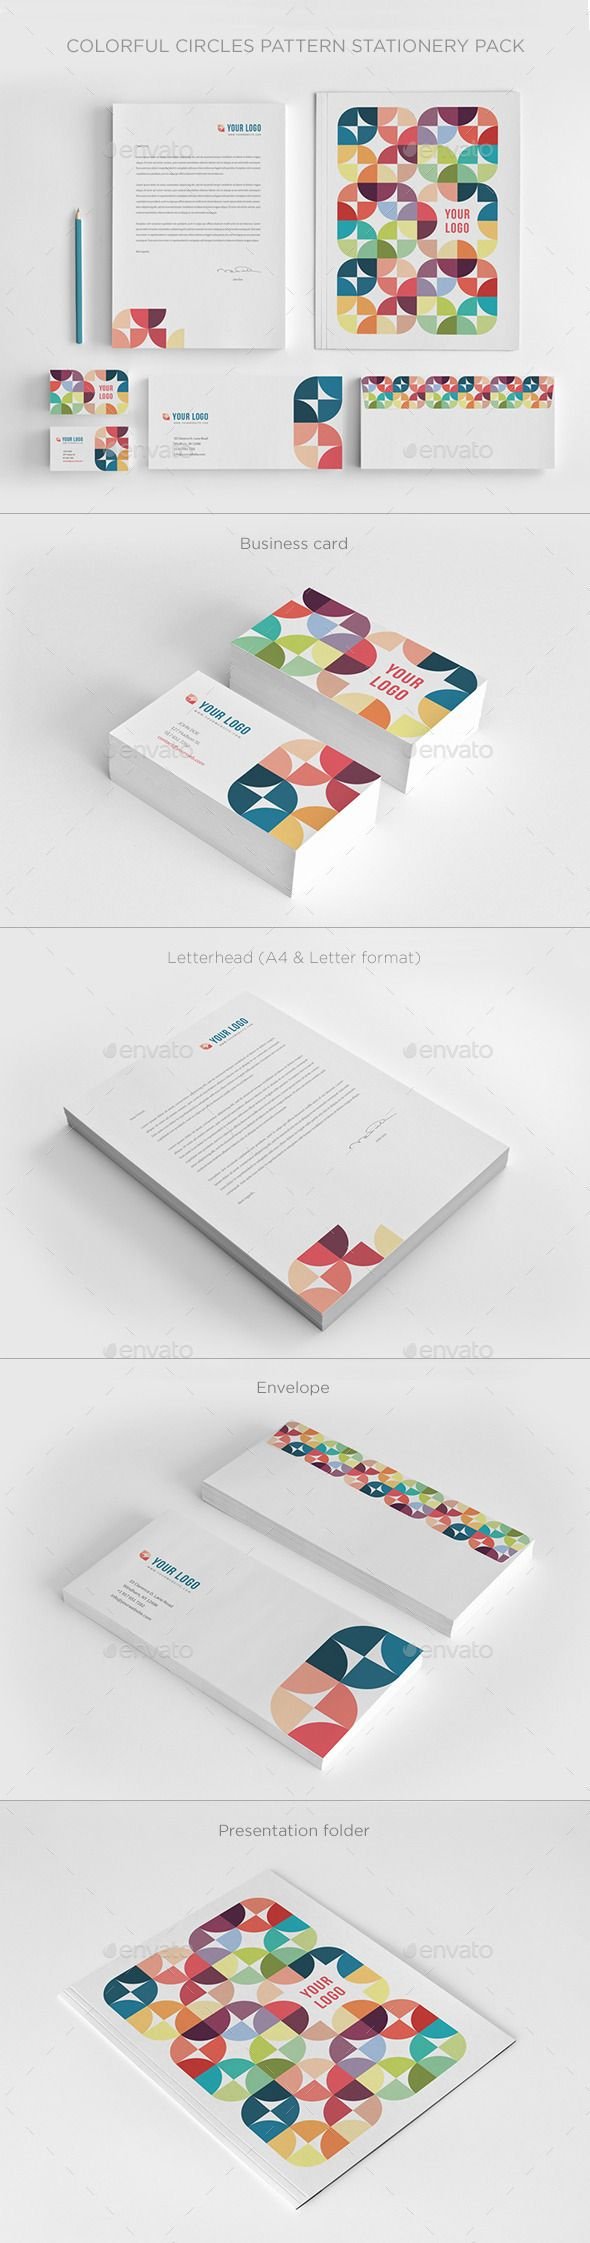 Colorful Circles Pattern Stationery - Stationery Print Templates